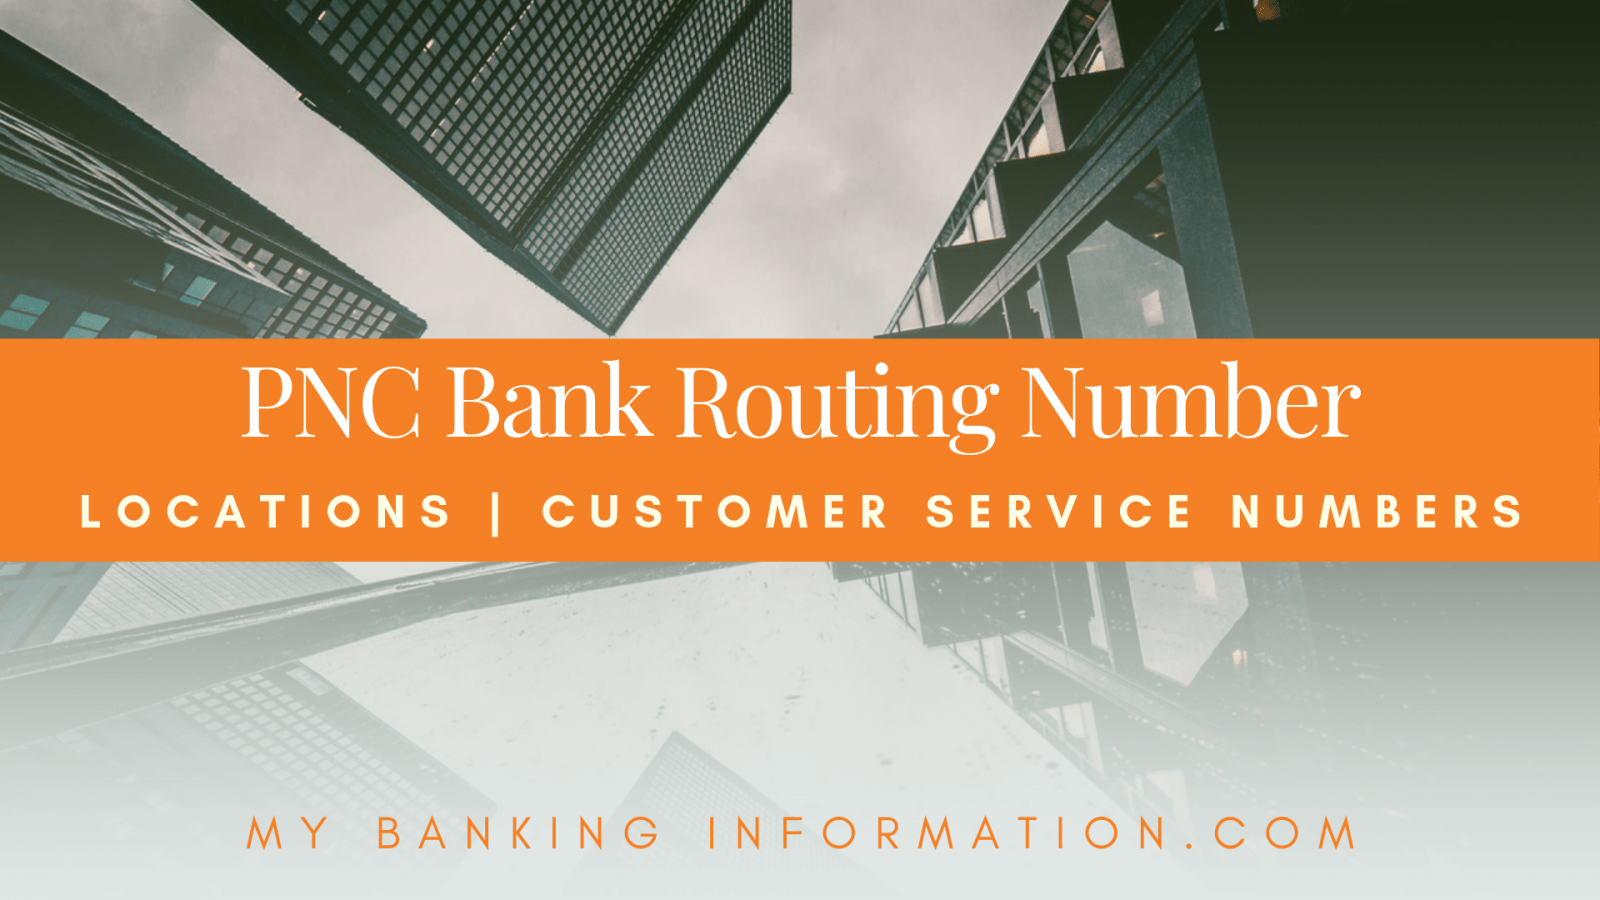 PNC Bank Routing Number | Locations | Customer Service